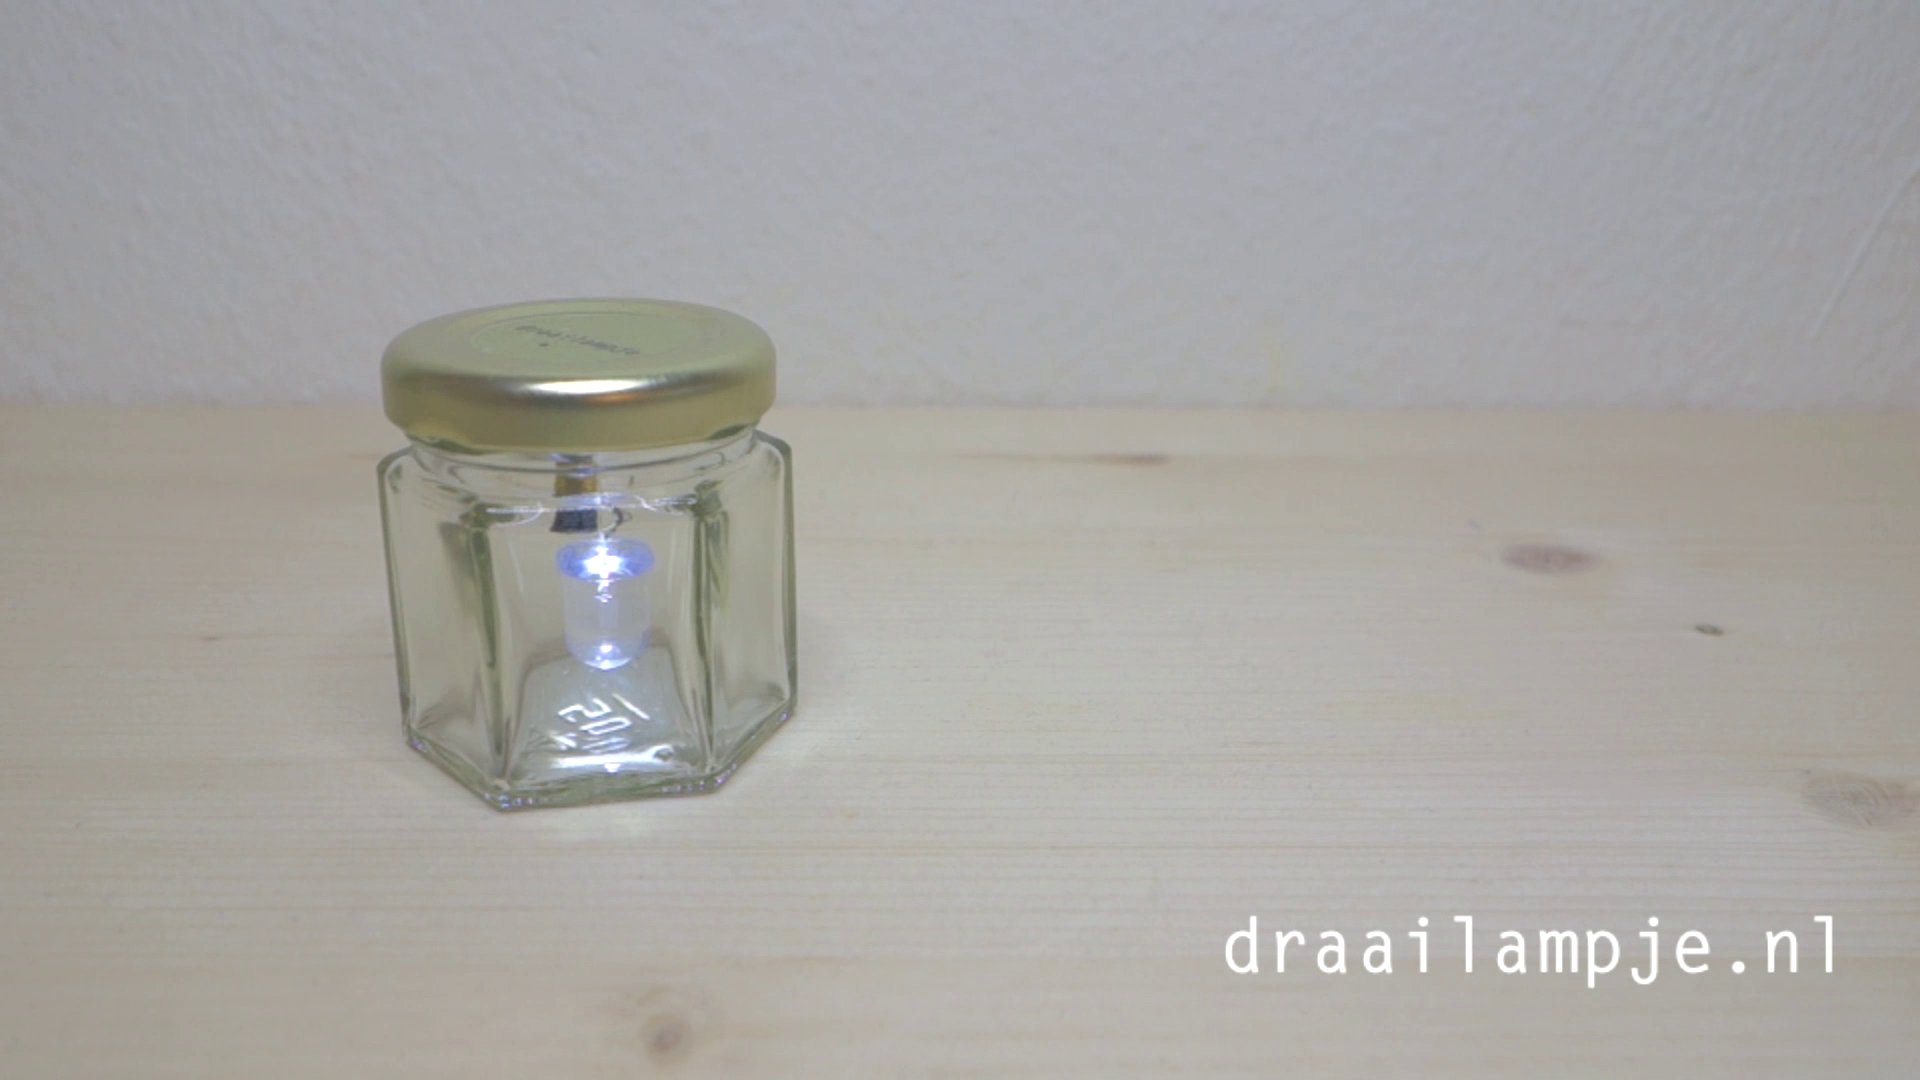 A cute little LED jar (turn it on and off by turning it!) named draailampje